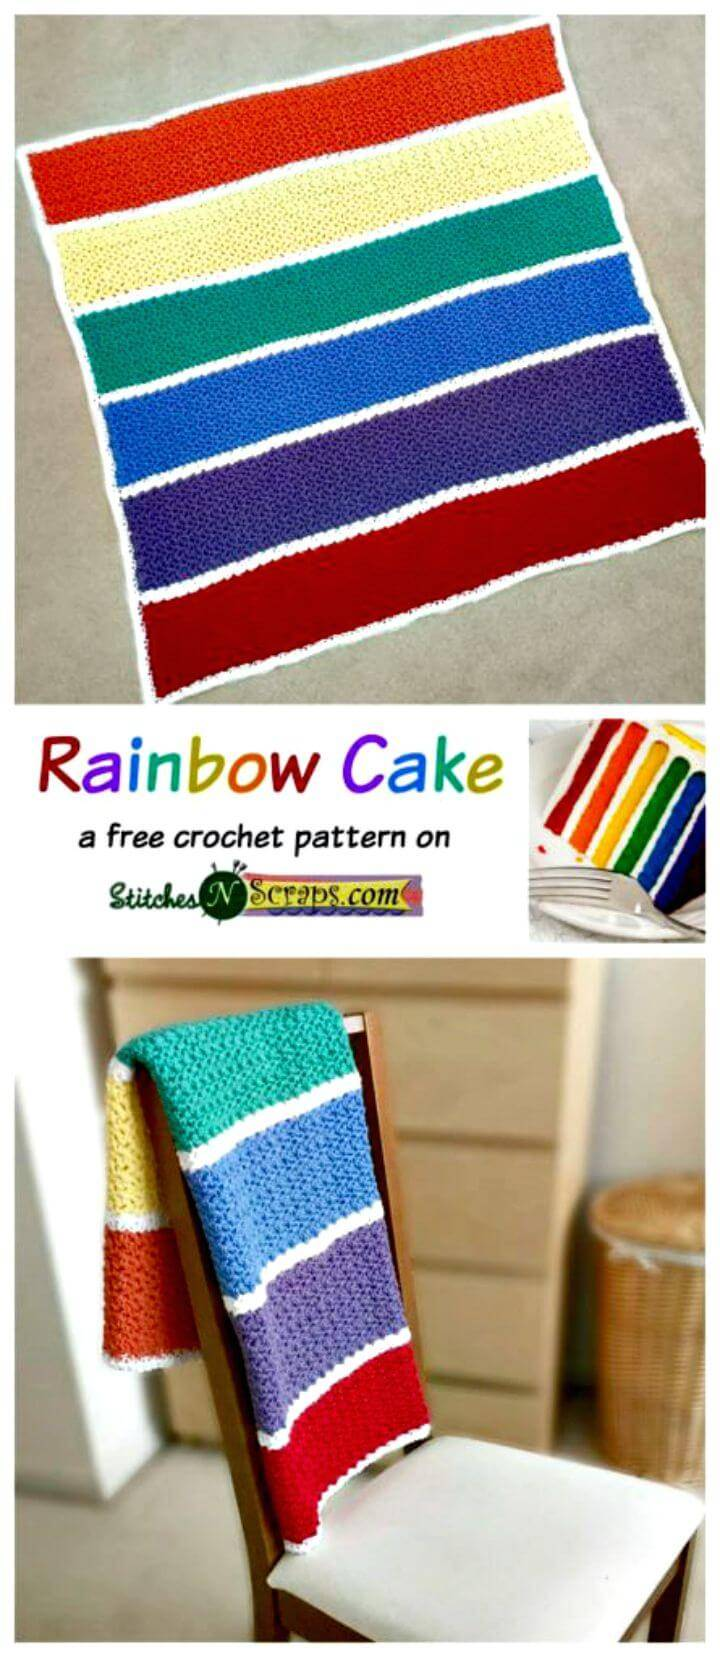 How To Free Crochet Rainbow Cake Pattern